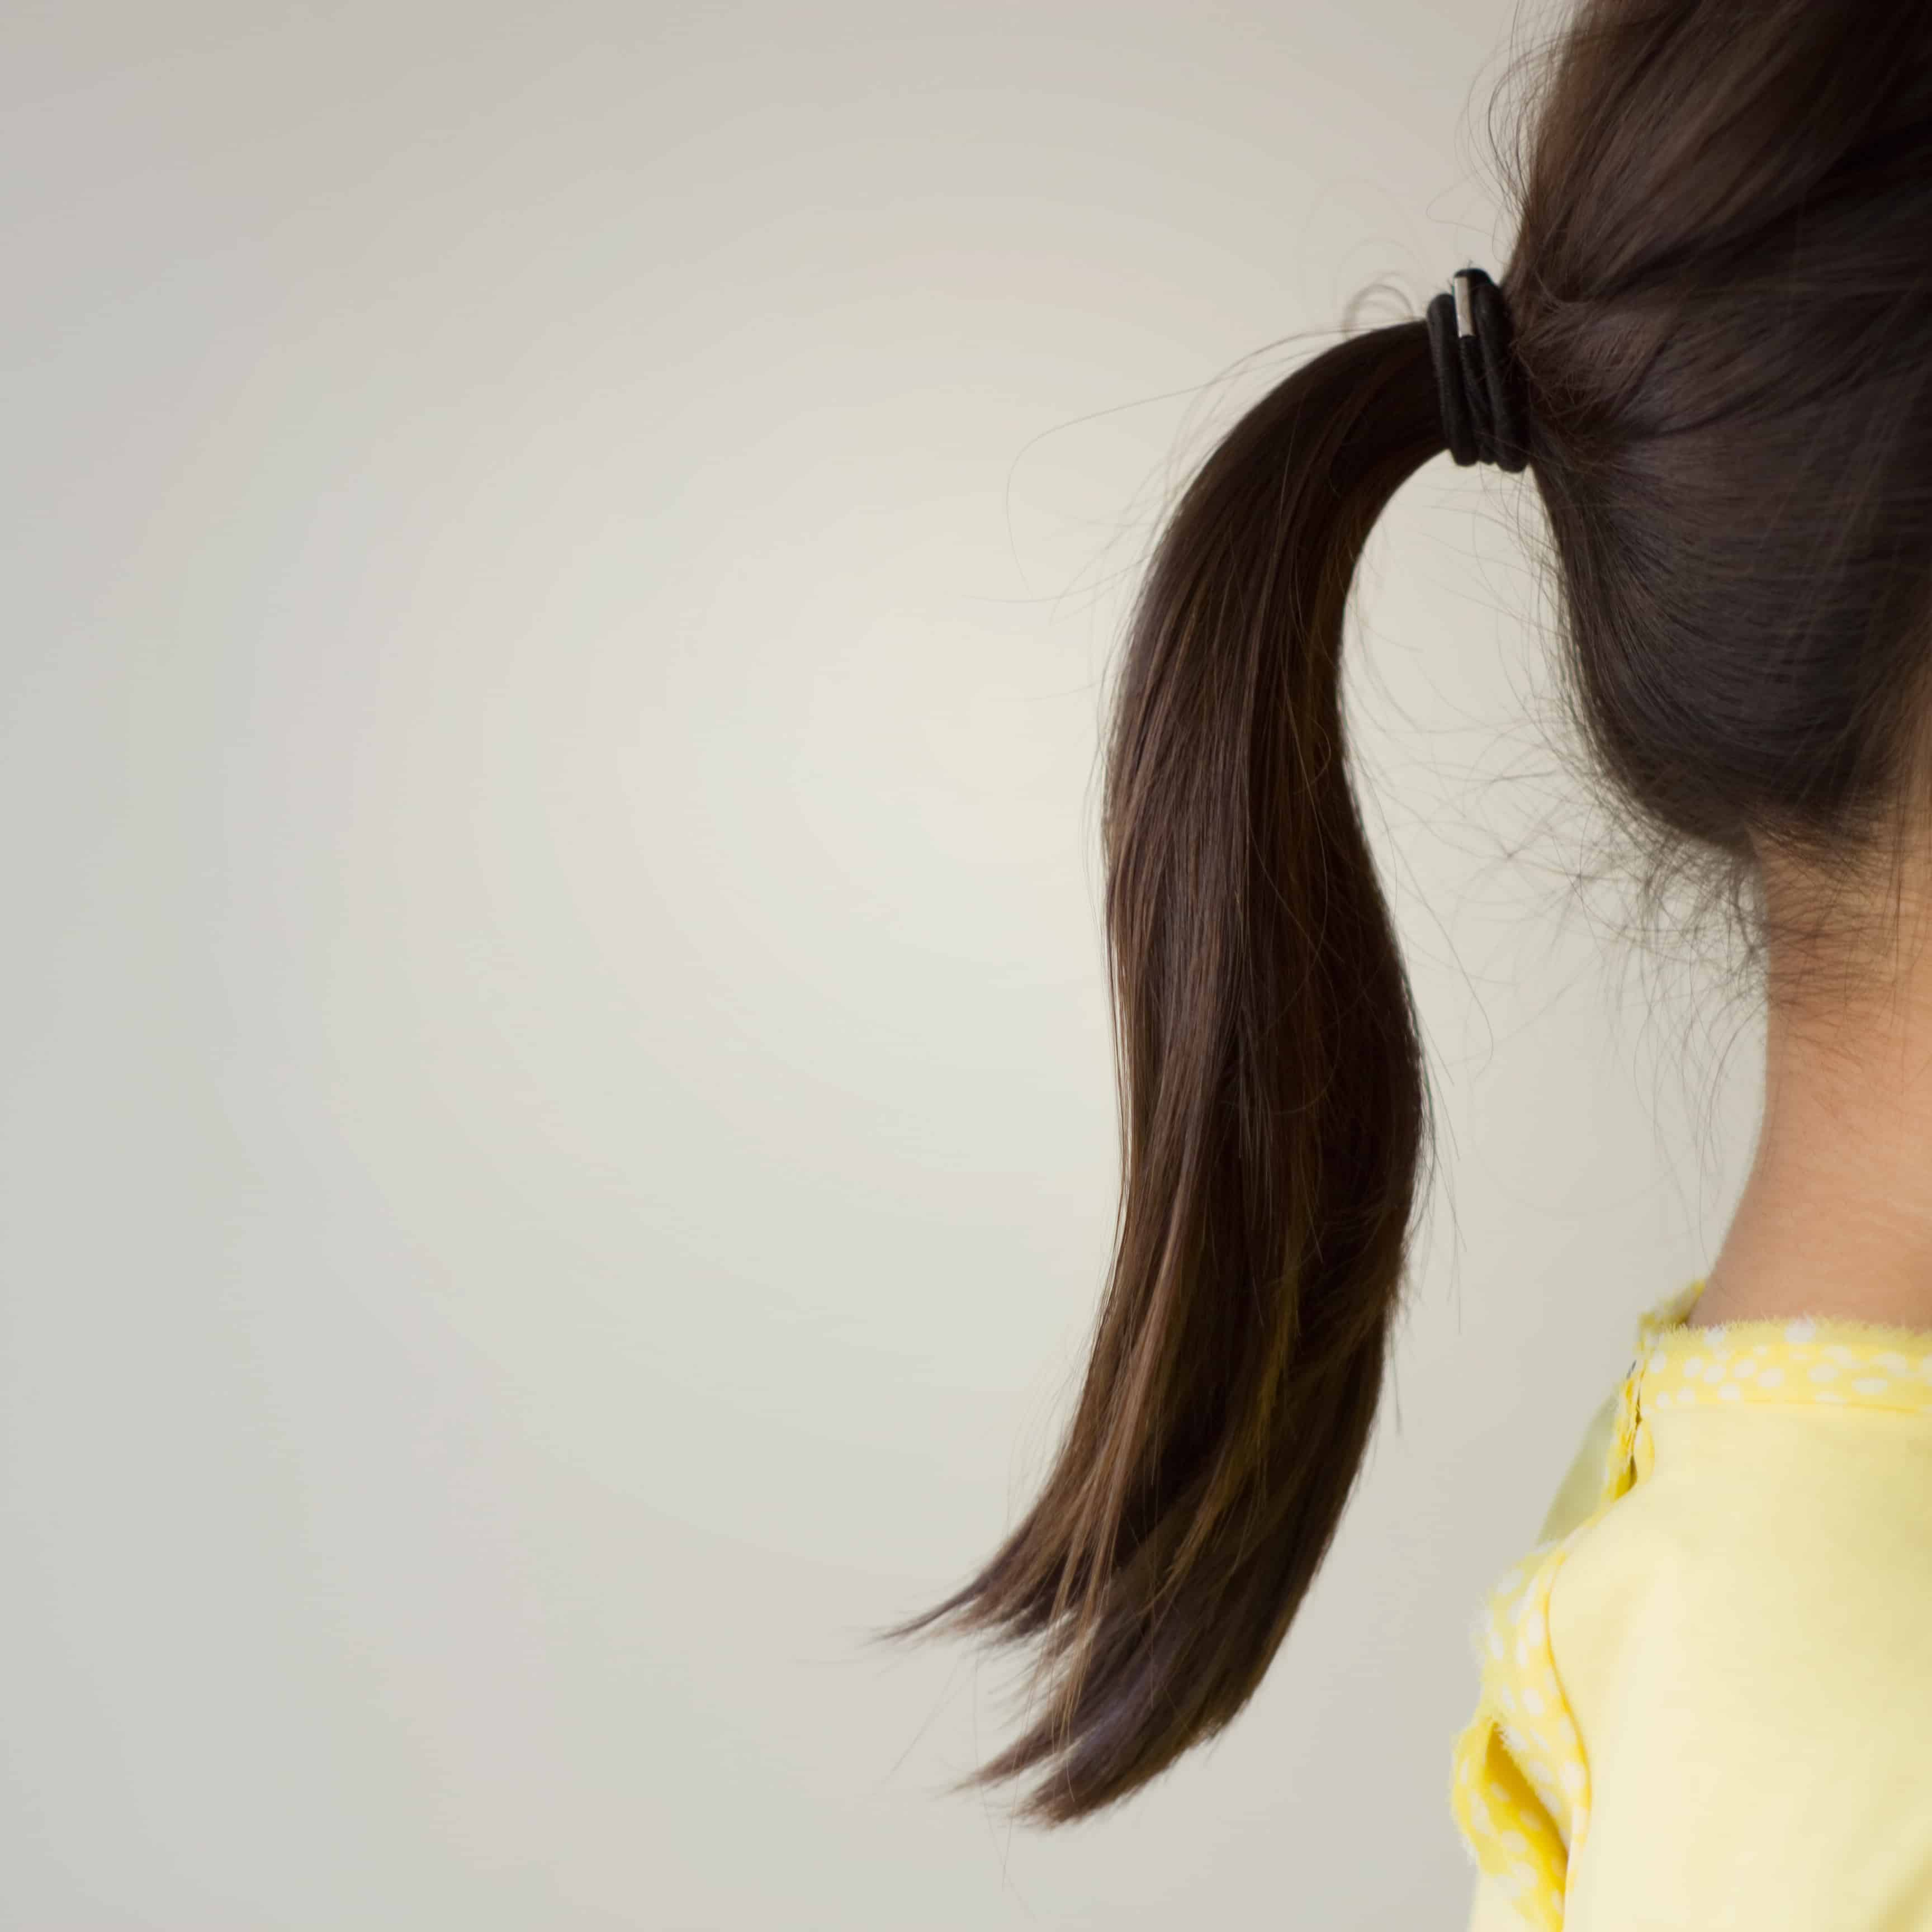 Don't use tight ponytail holders